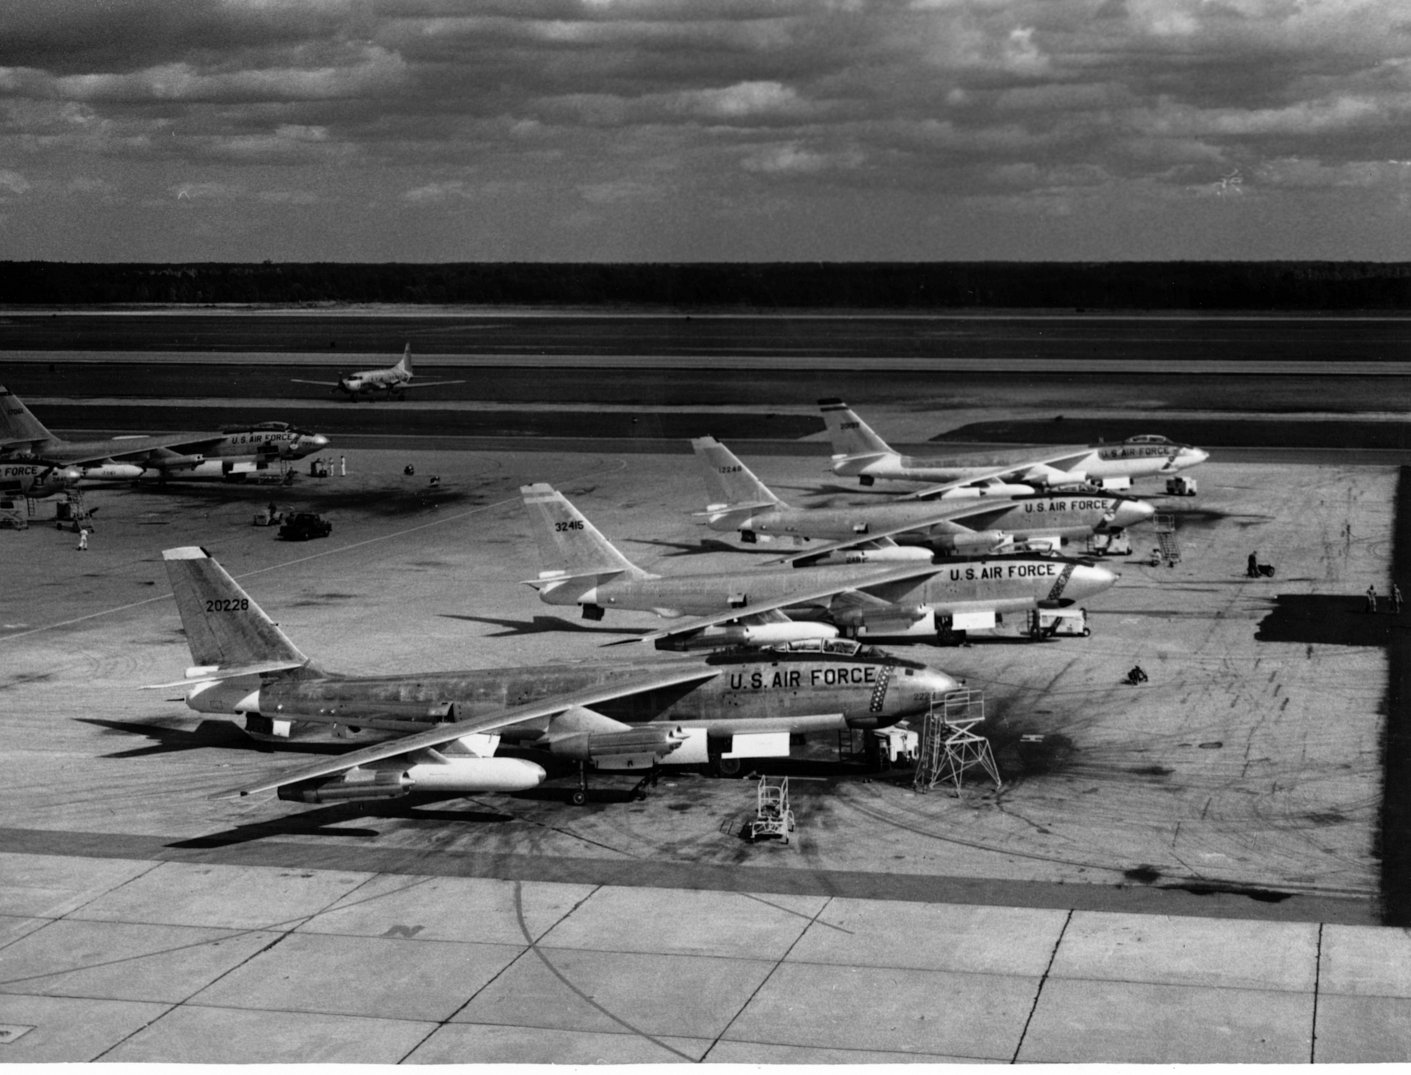 The USAF Strategic Air Command operated B-47 Stratojets (B-47s, EB-47s, RB-47s and YRB-47s) from 1951 through 1965.